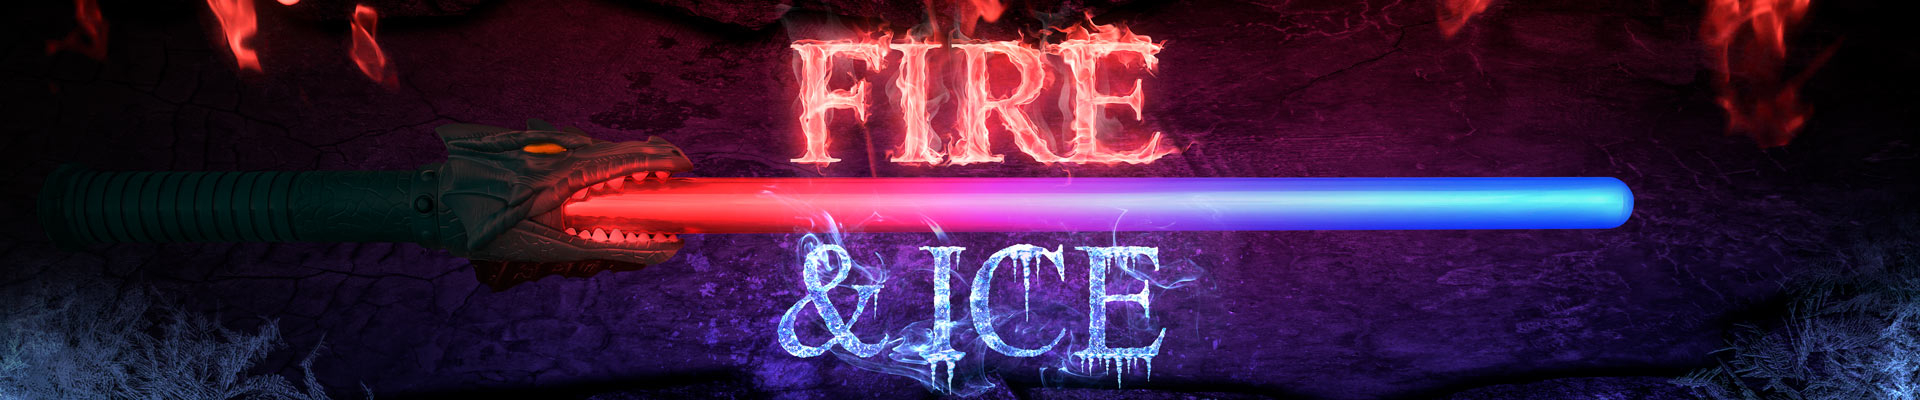 Light up dragon saber for Fire & Ice campaign.